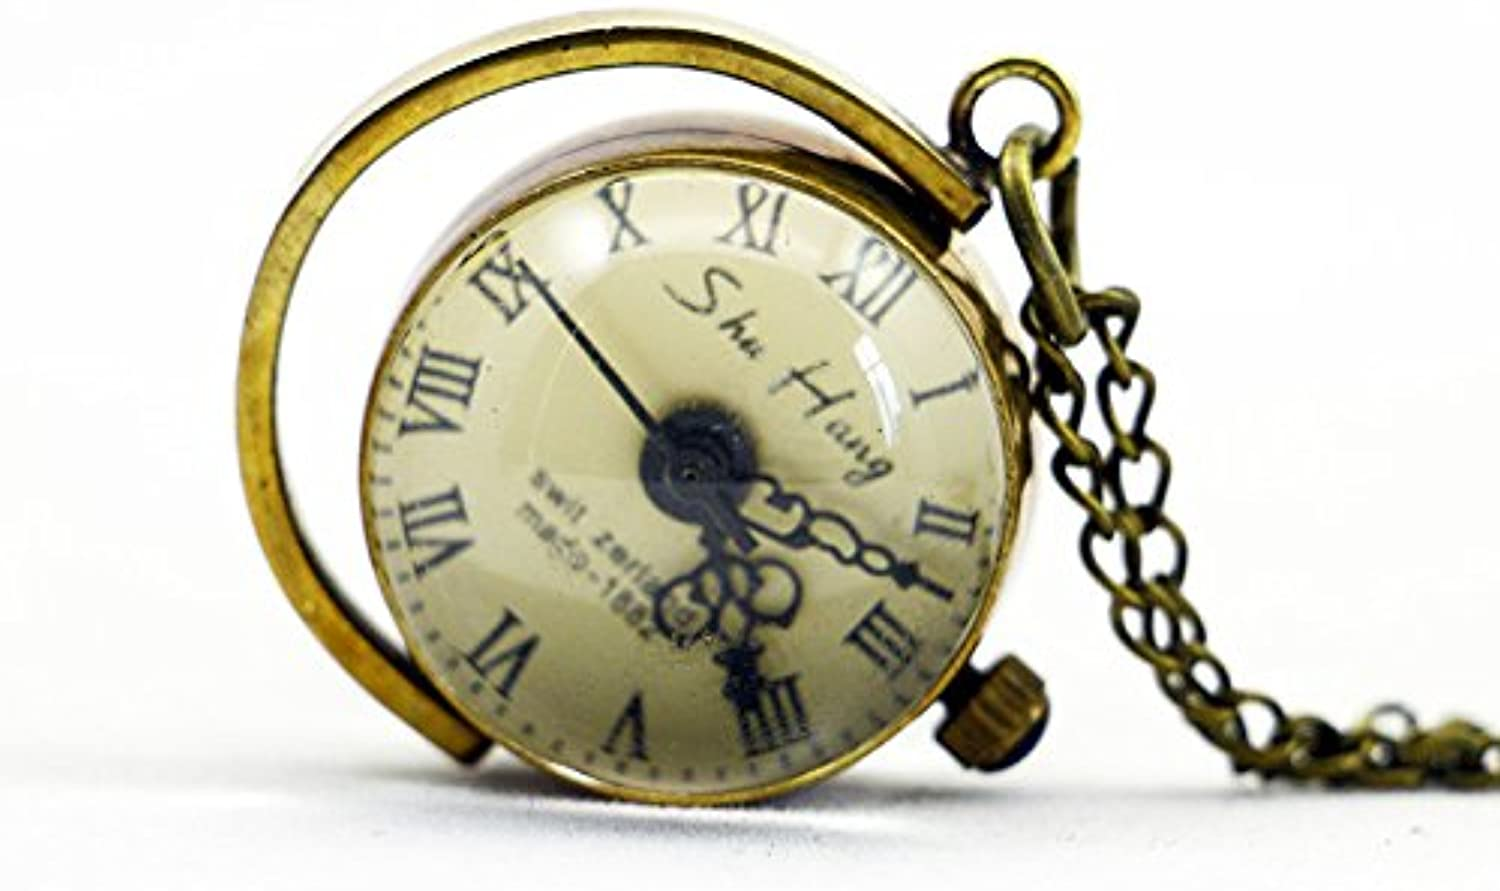 XM Classic retro digital men and women mechanical pocket watch